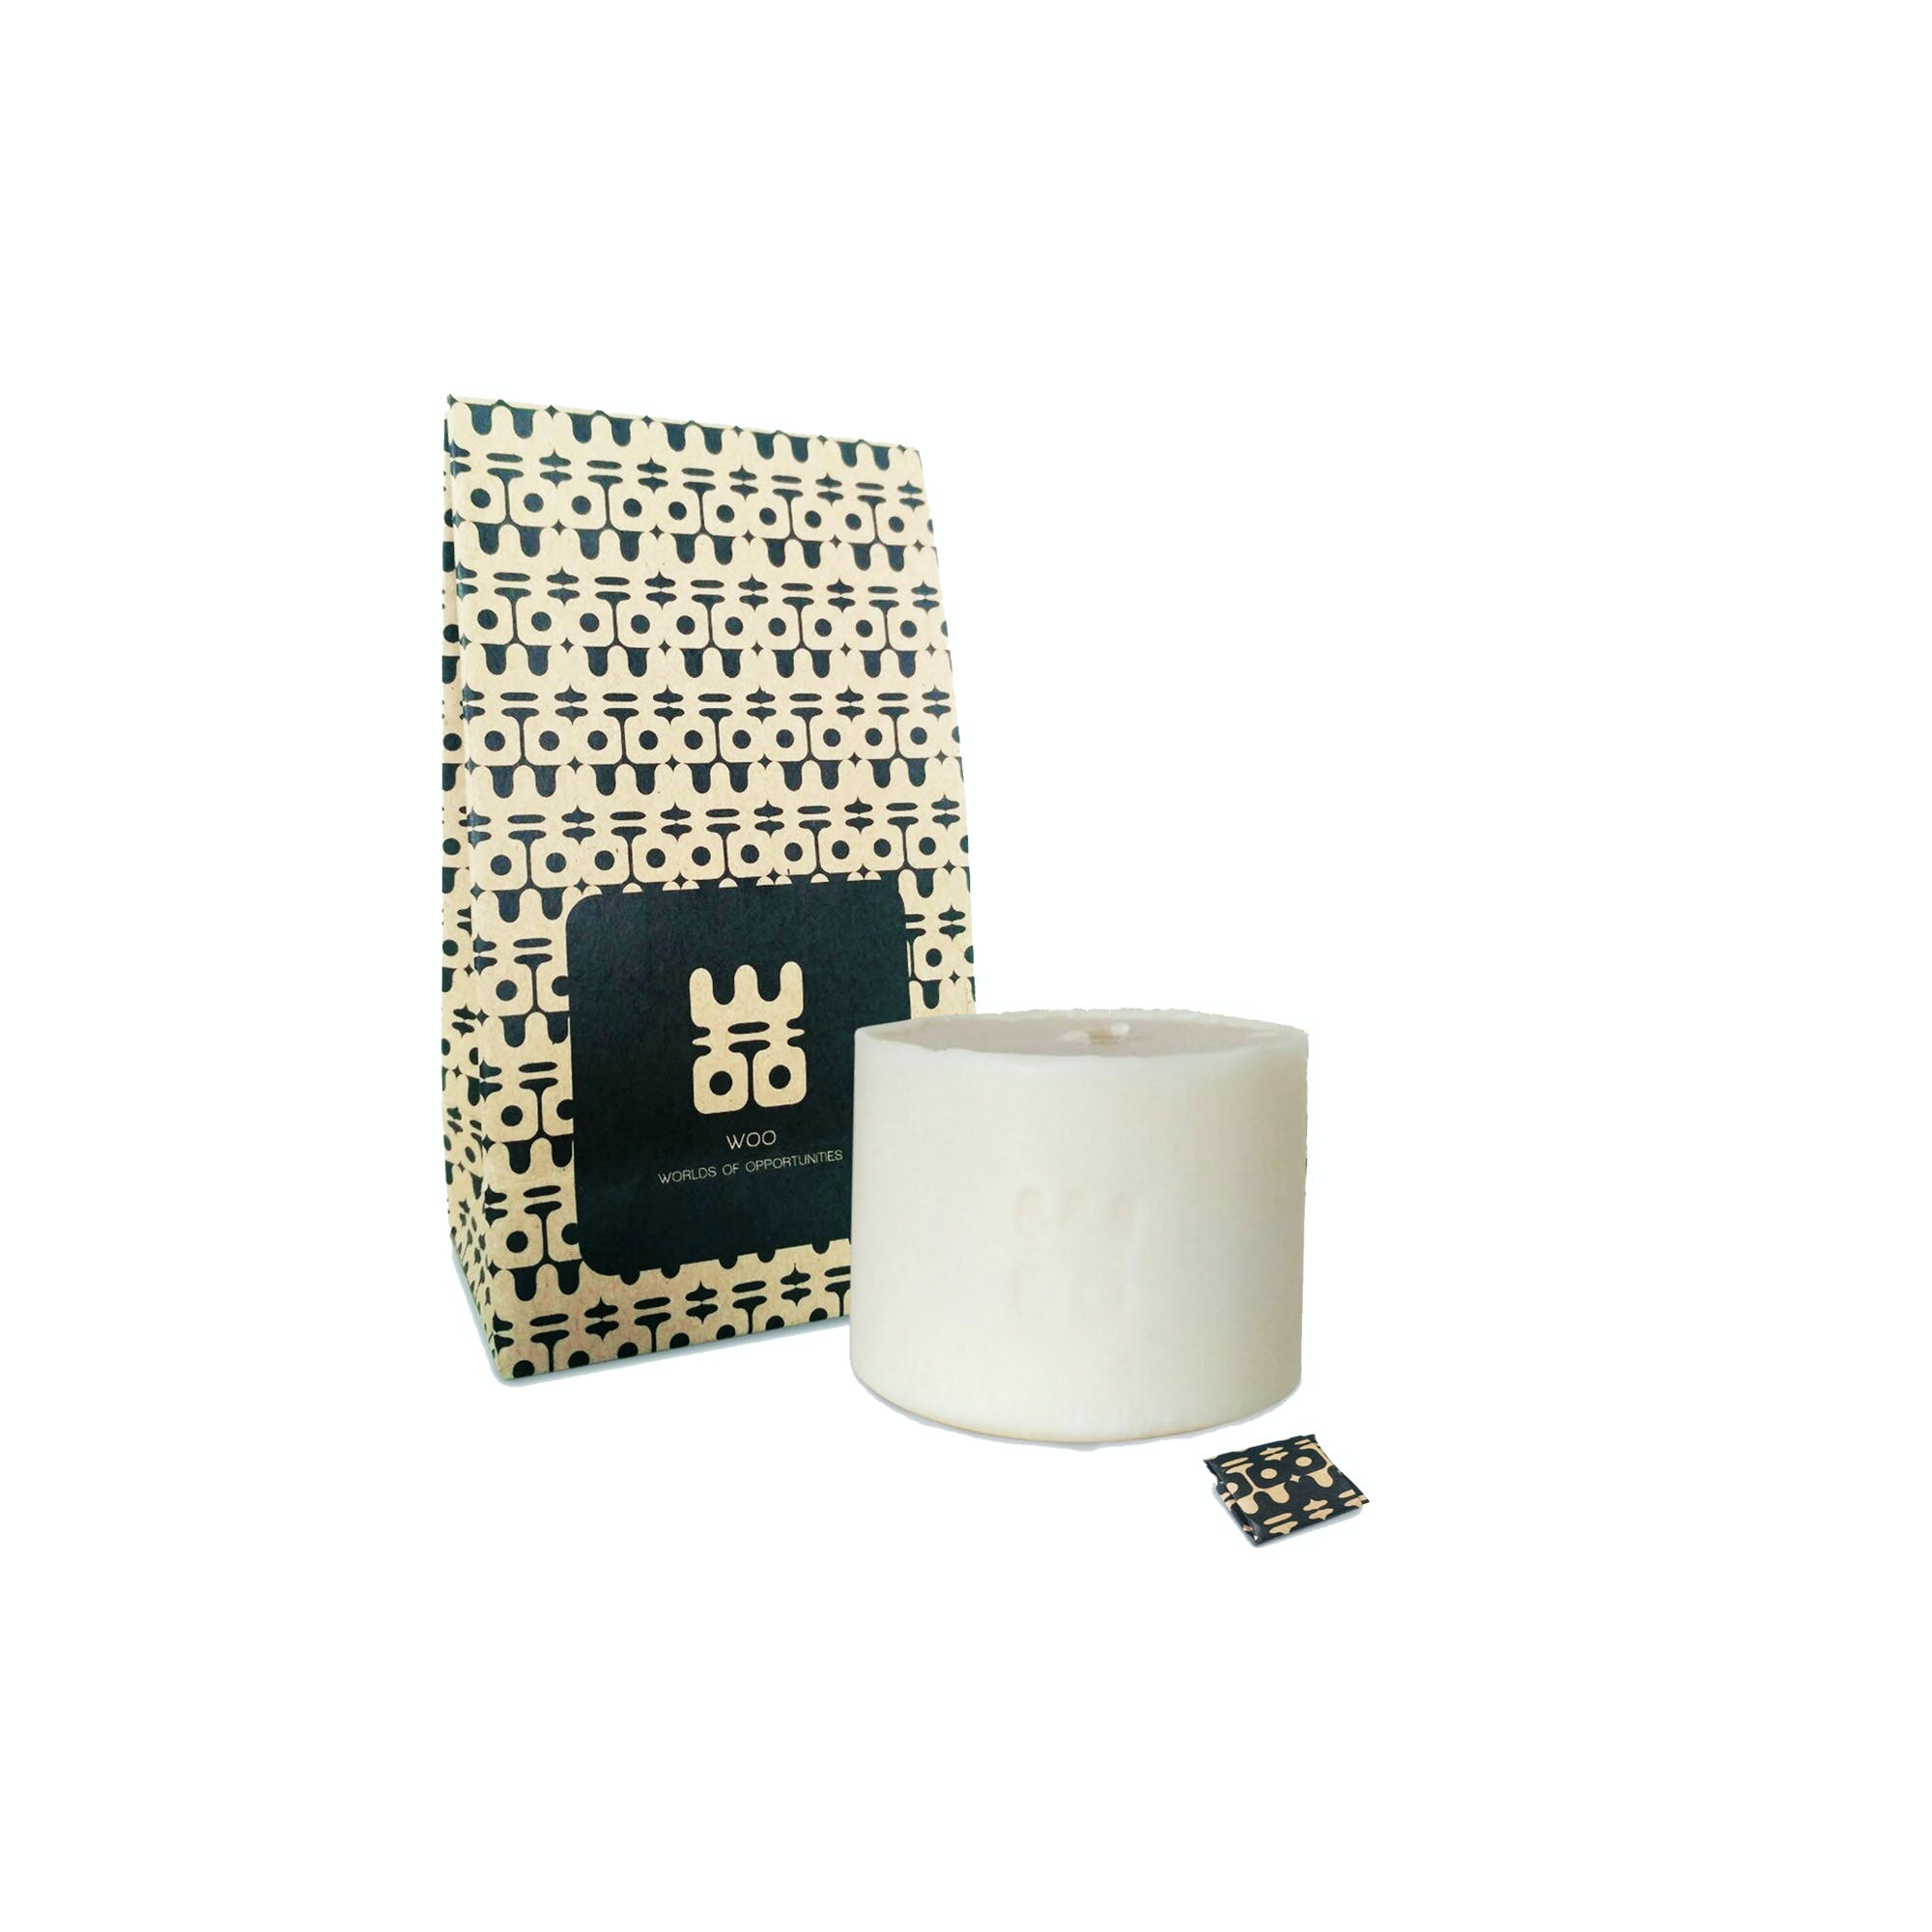 WOO Perfume Candle Refill – L